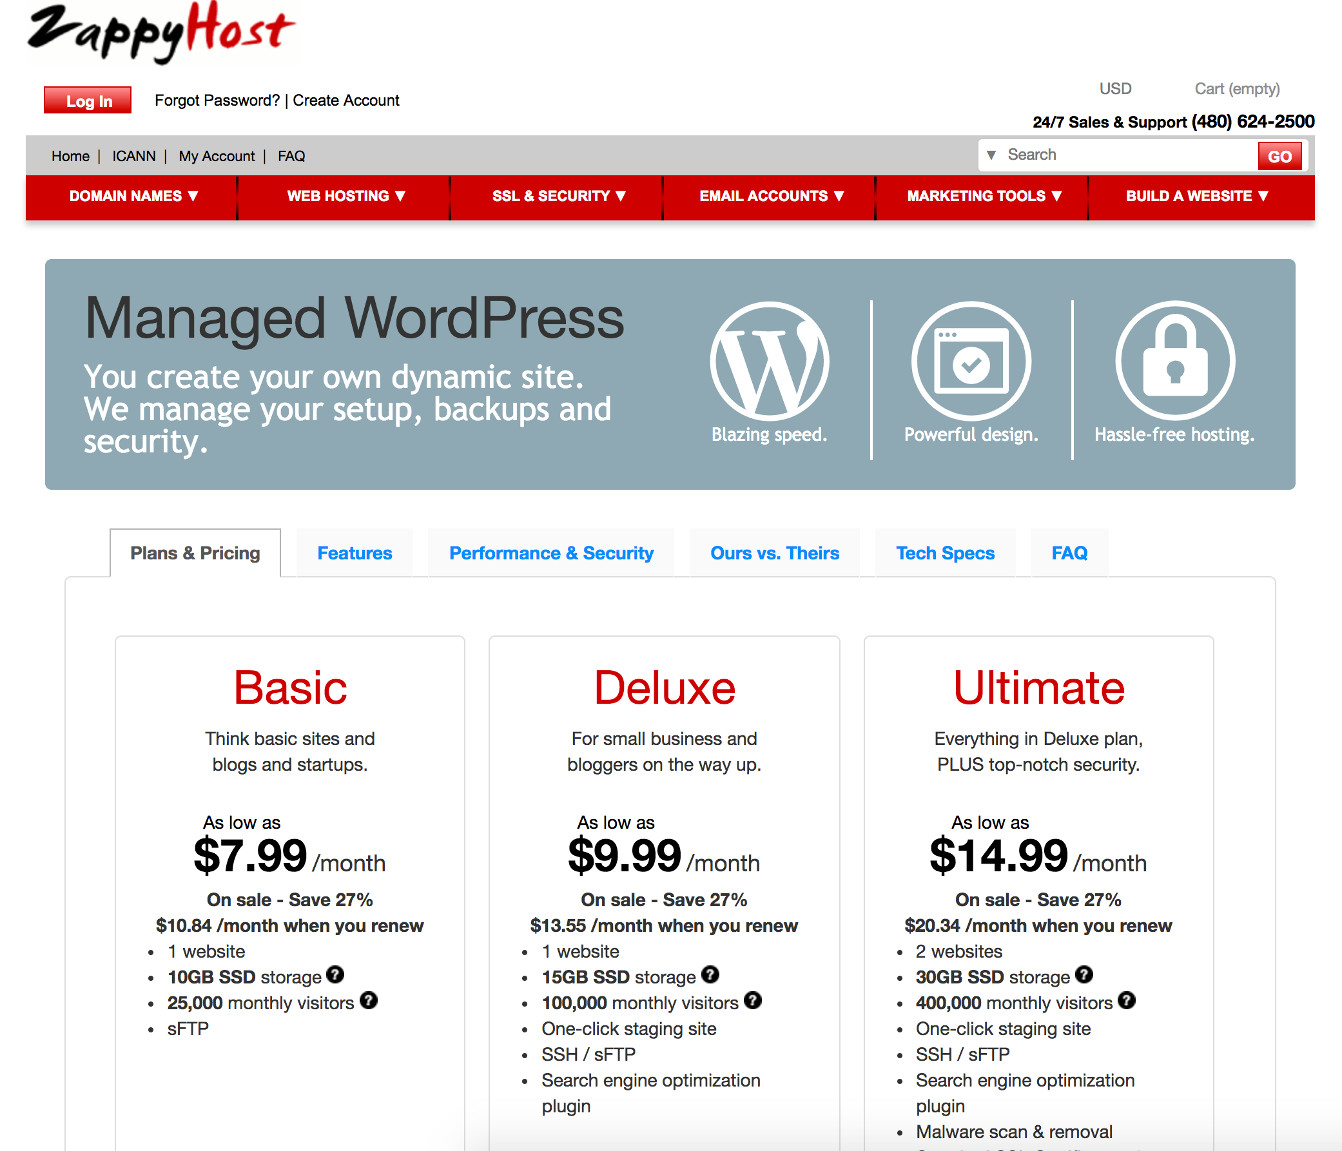 Screenshot of the ZappyHost WordPress hosting page